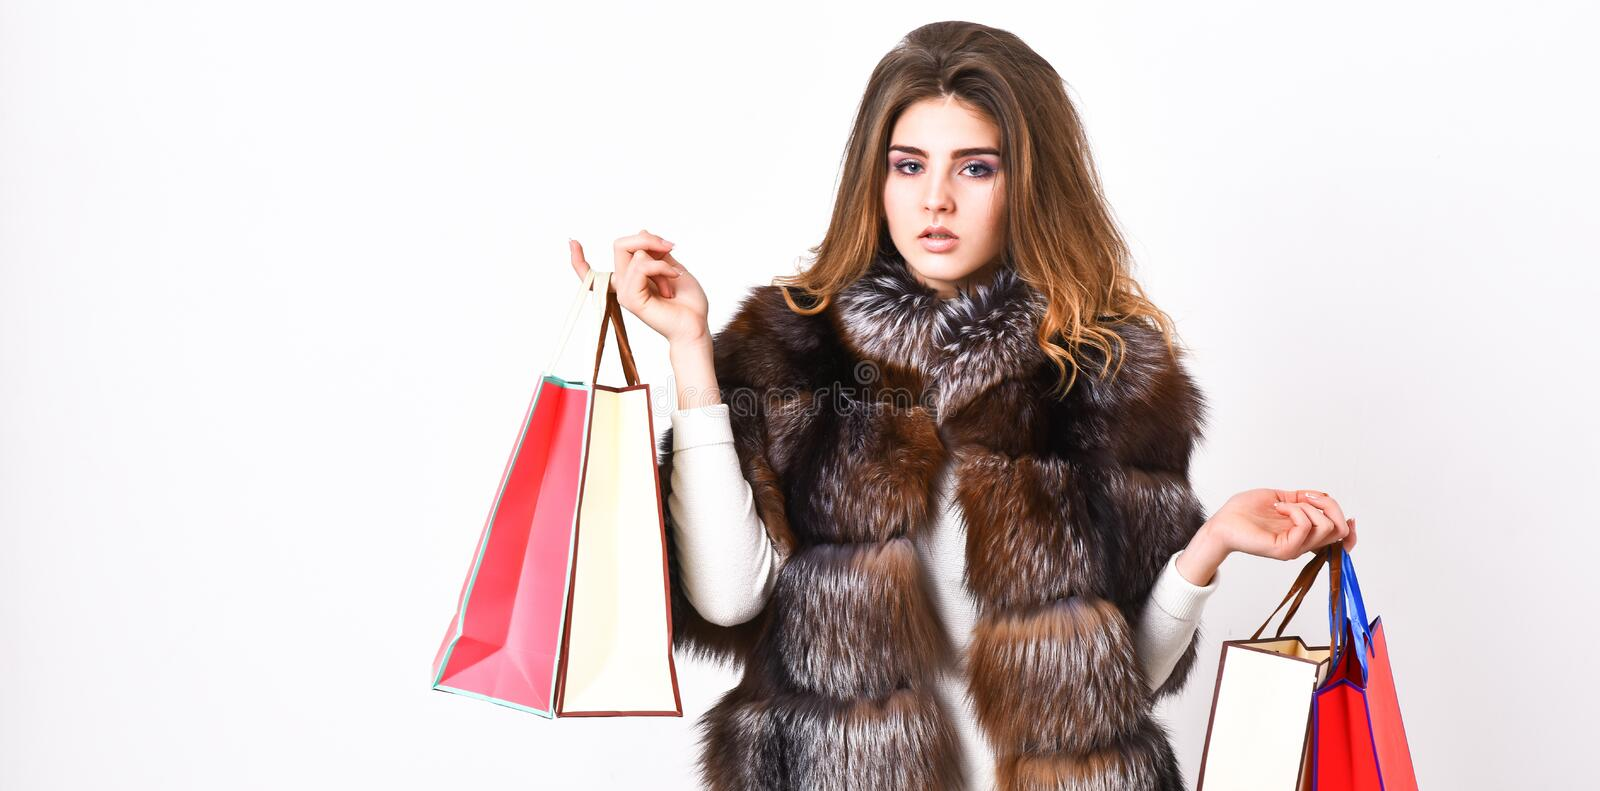 Lady hold shopping bags. Discount and sale. Fashionista buy clothes on black friday. Girl makeup furry coat shopping. White background. Shopping or birthday stock photo